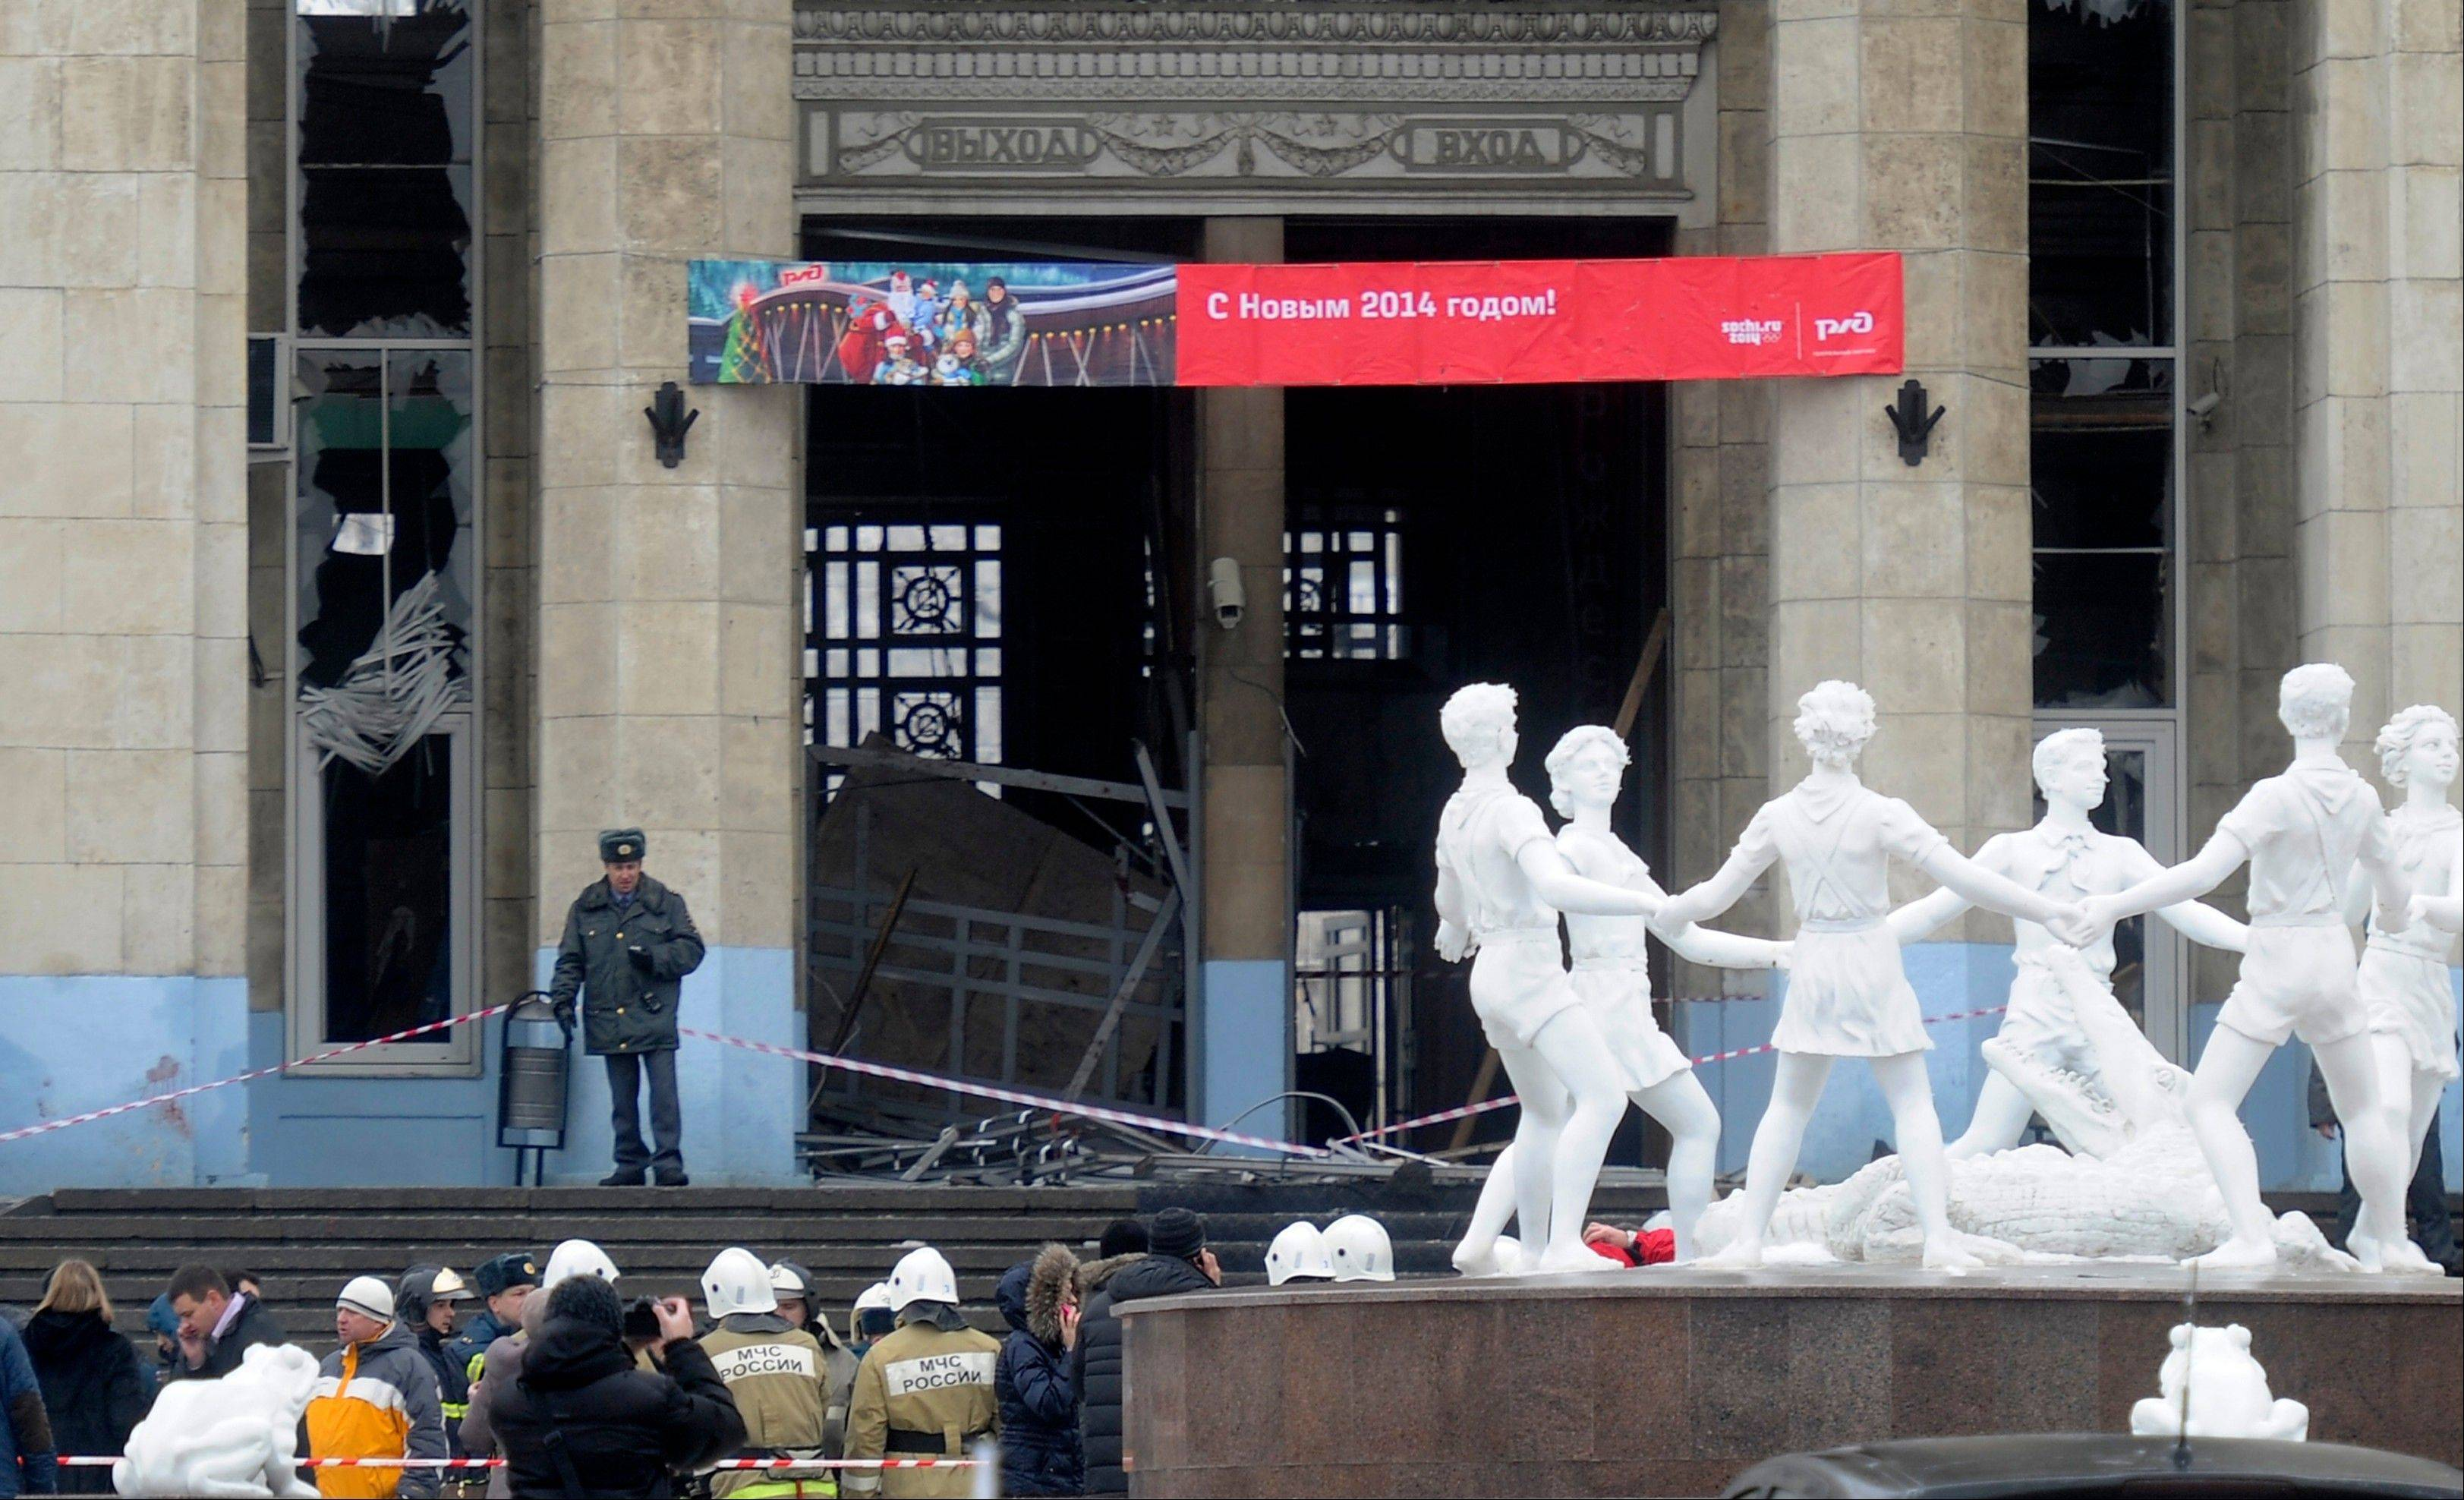 A police officer guards a main entrance to the Volgograd railway station hit by an explosion, in Volgograd, Russia, Dec. 29, 2013. More then a dozen people were killed and scores were wounded, heightening concern about terrorism ahead of February's Olympics in the Black Sea resort of Sochi.